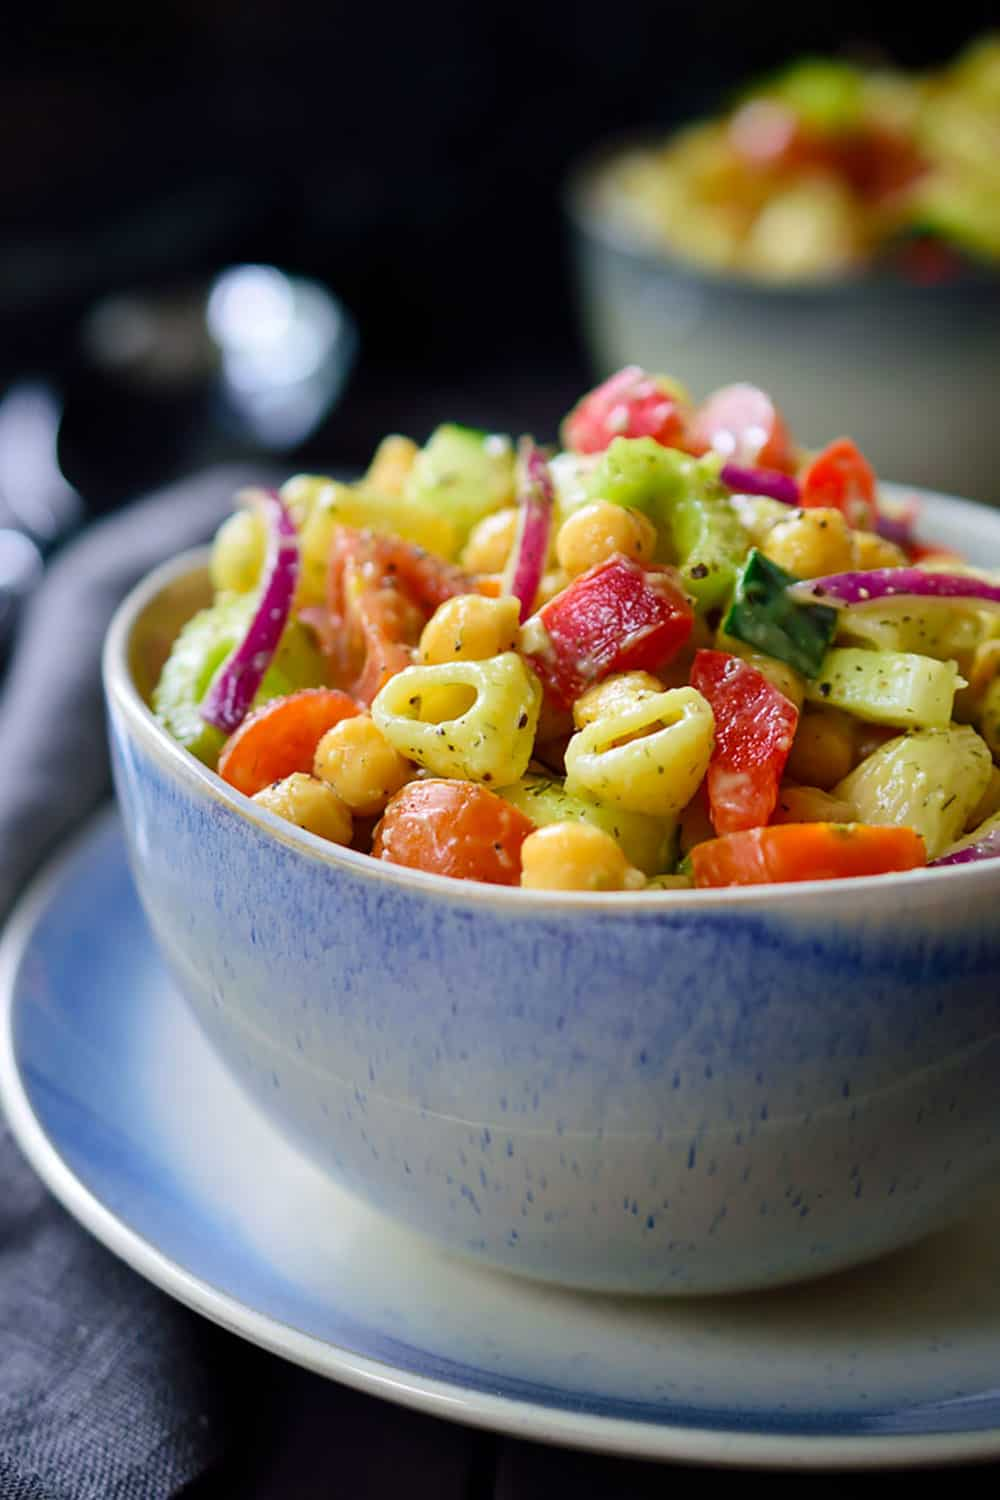 Avocado Pasta Salad with cherry tomatoes, red oions